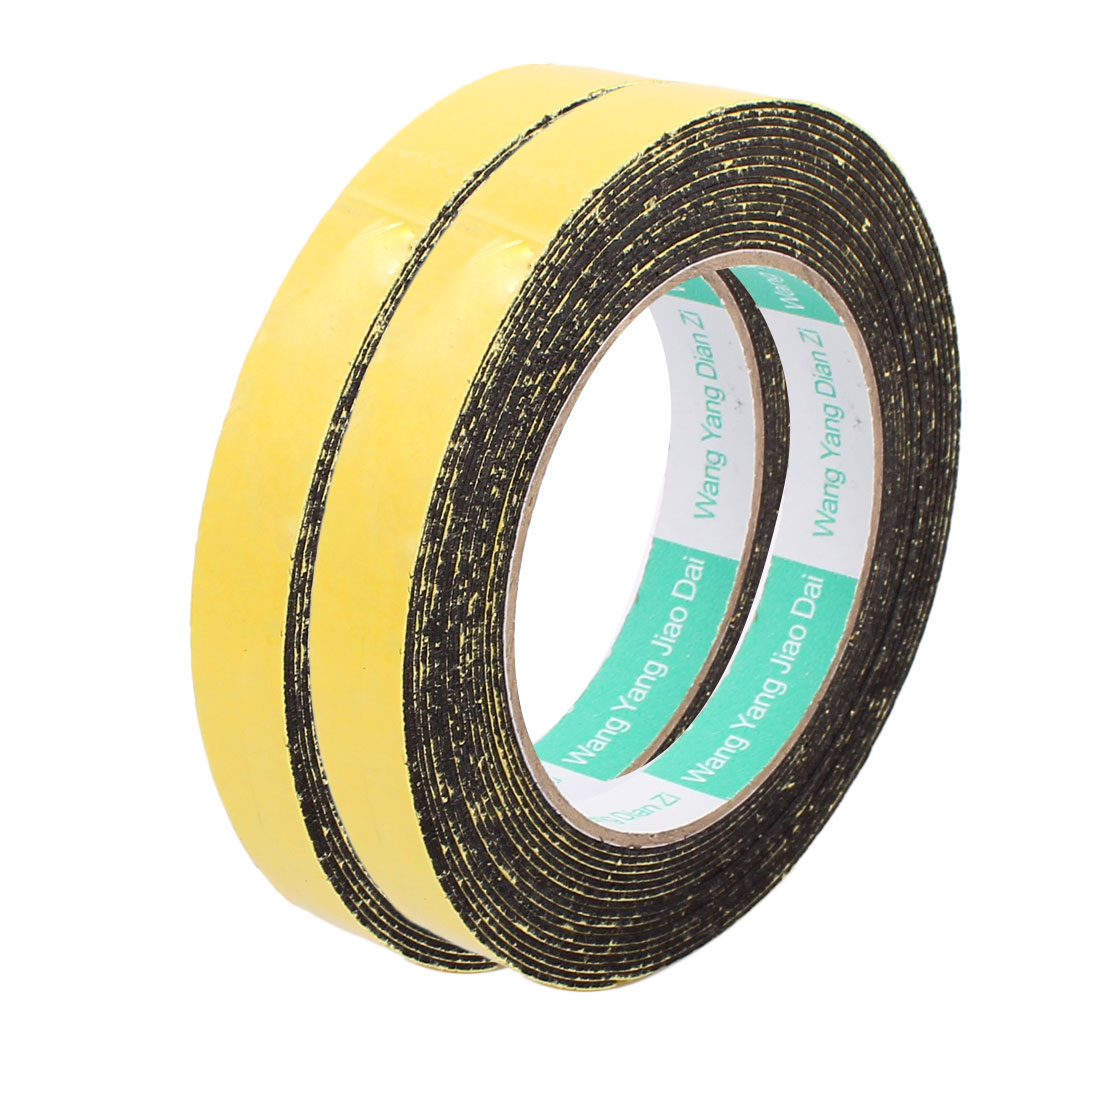 2pcs 15mm x 1mm Single Sided Self Adhesive Shockproof Sponge Foam Tape 5M Length